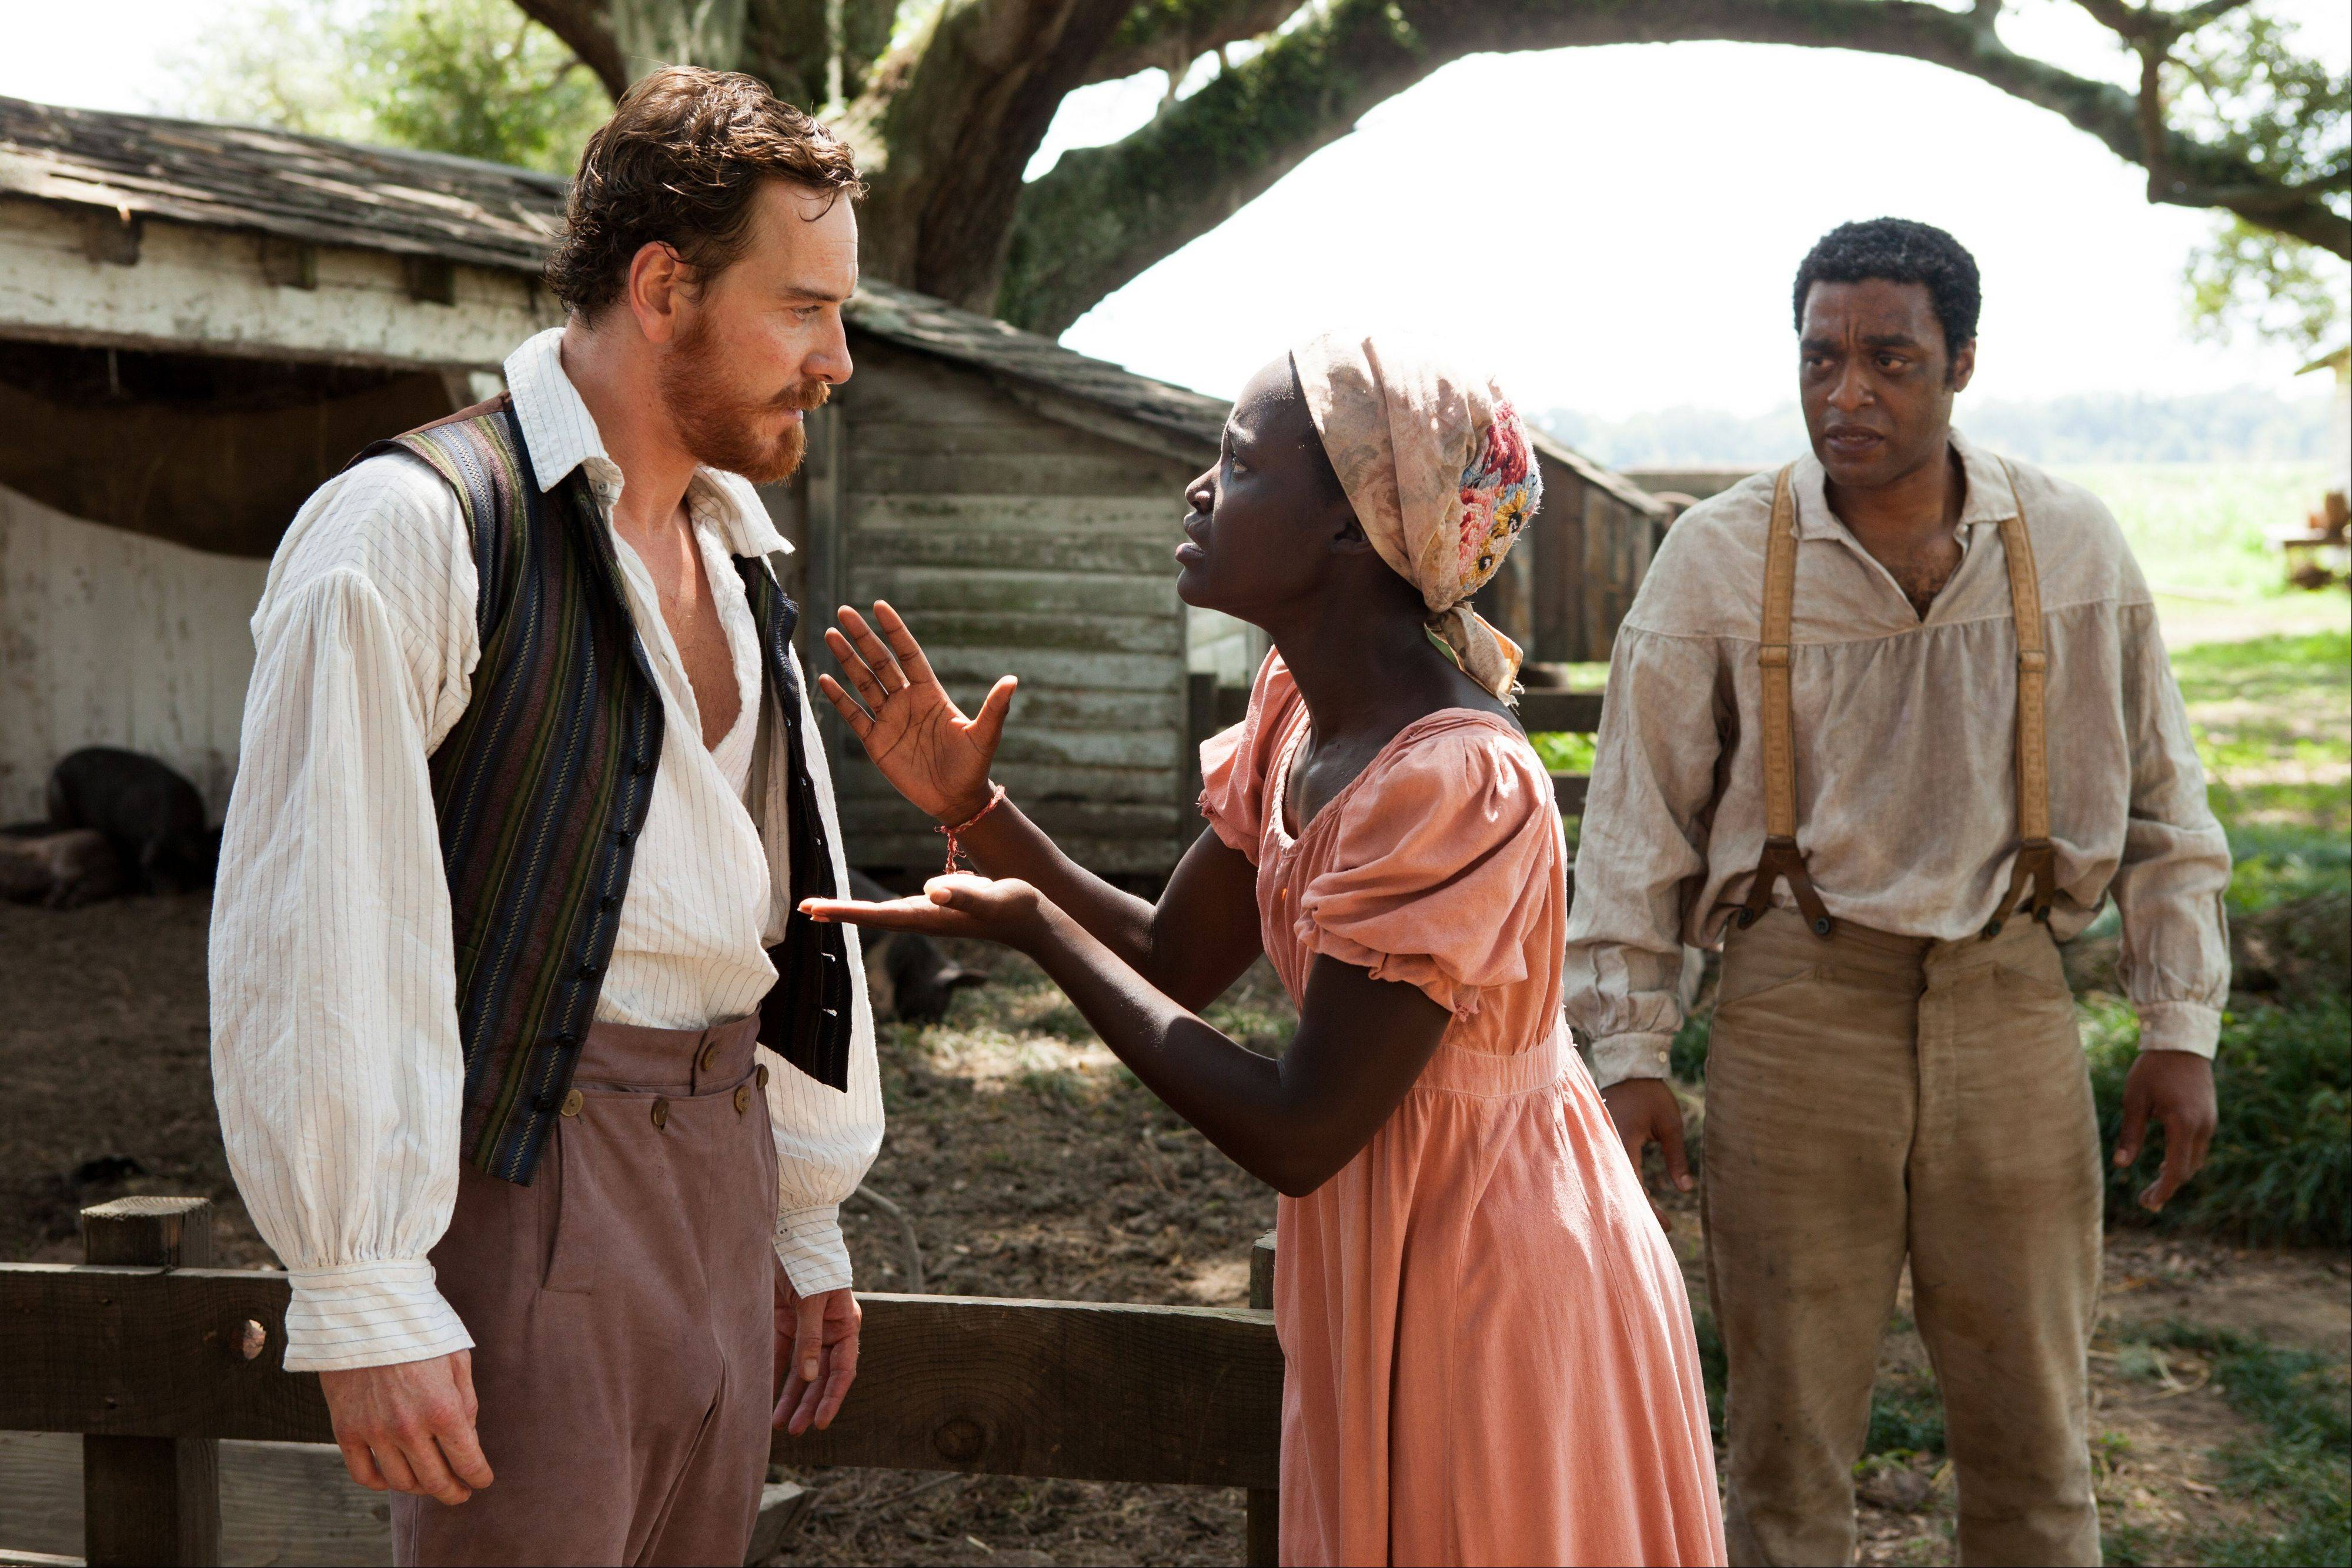 '12 Years a Slave' a visceral look at America's dark past